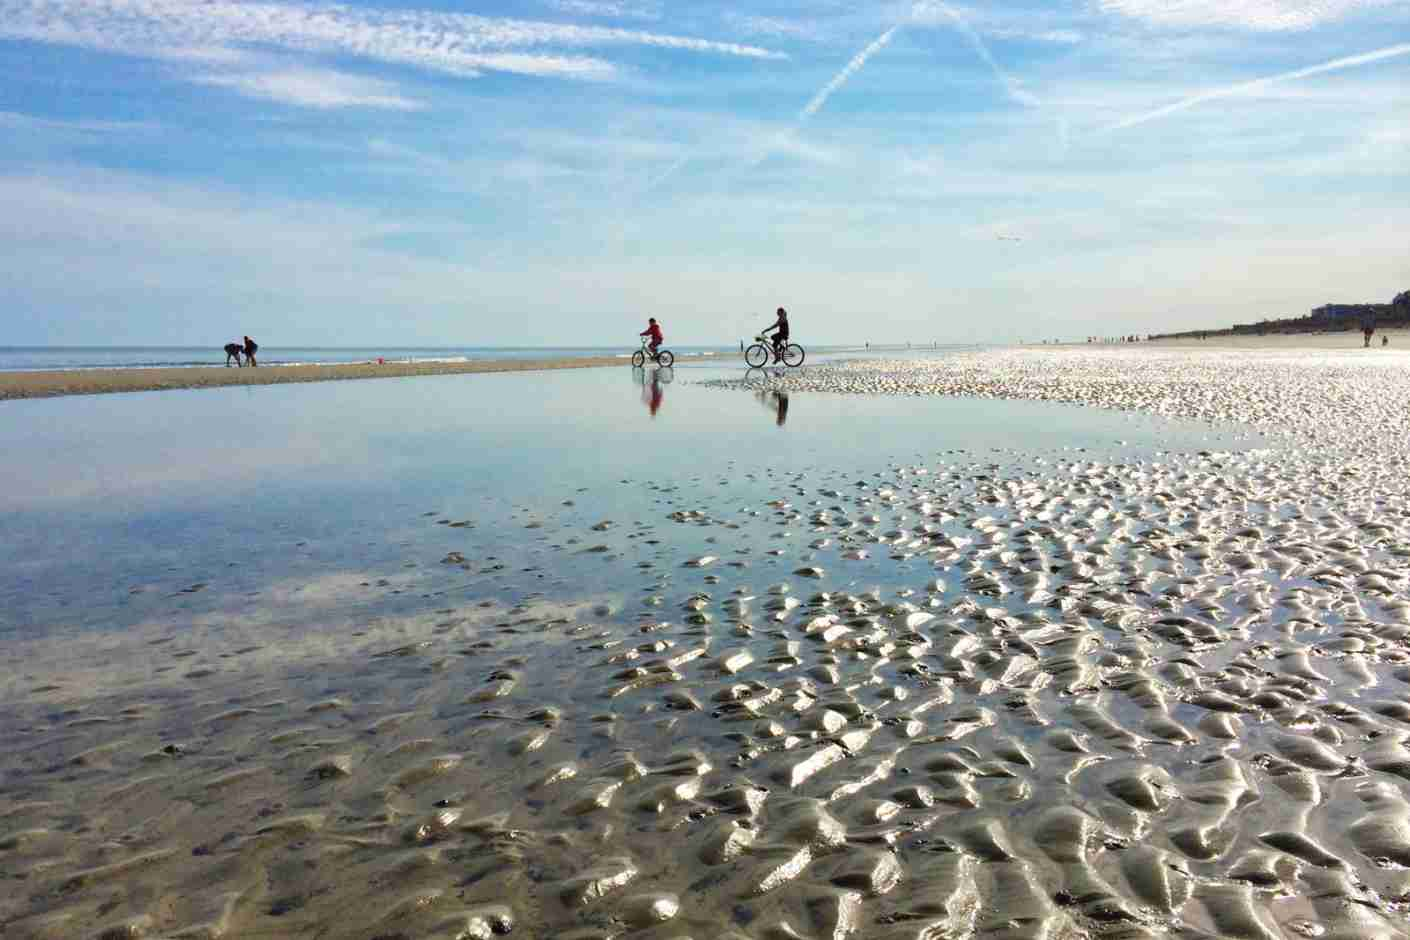 Bicyclists and beach combers on a Hilton Head Island, SC beach at low tide. (Photo via Getty Images)